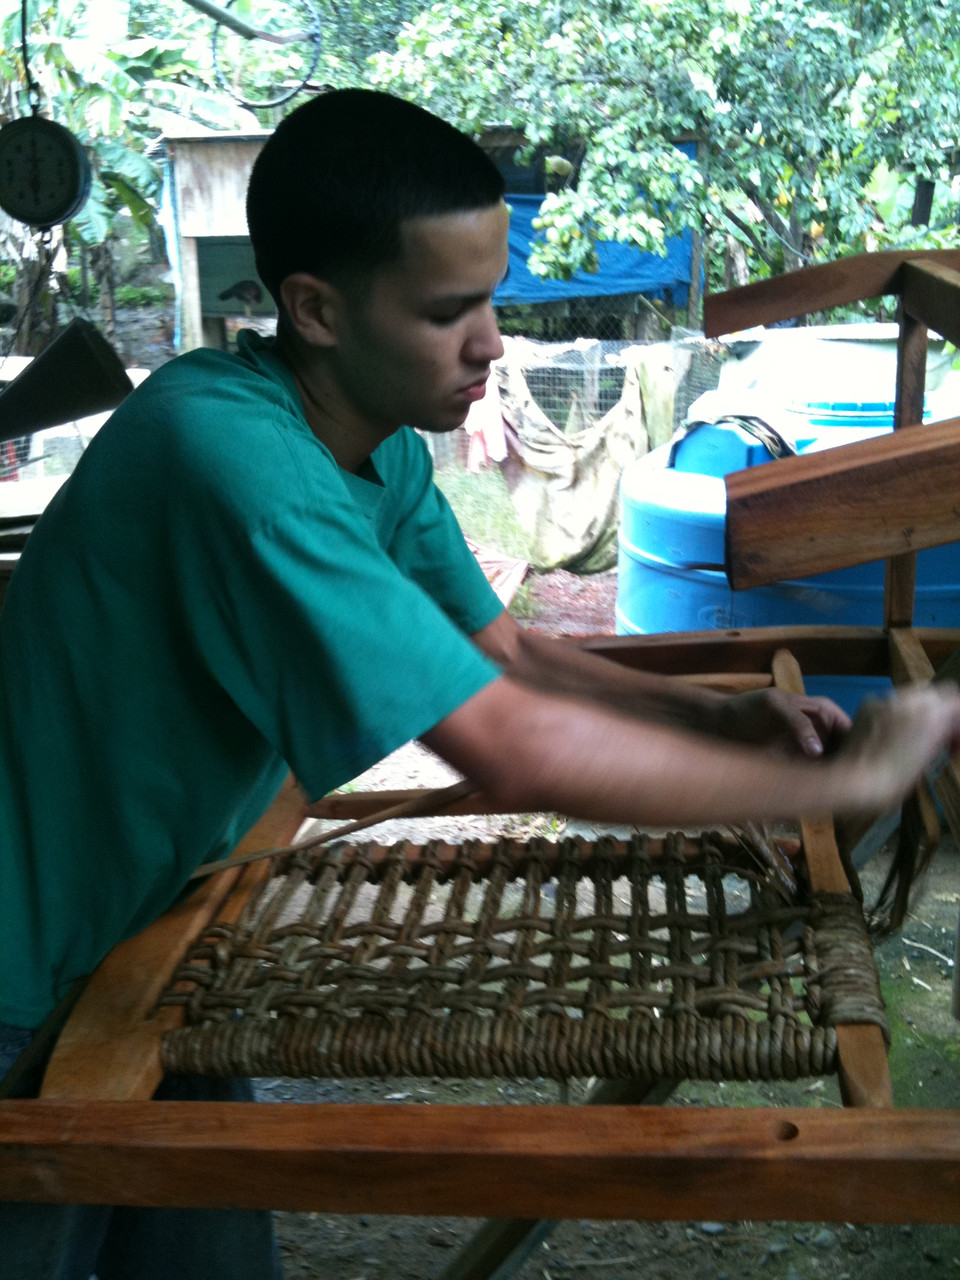 Furniture being woven by a young man in a green shirt.